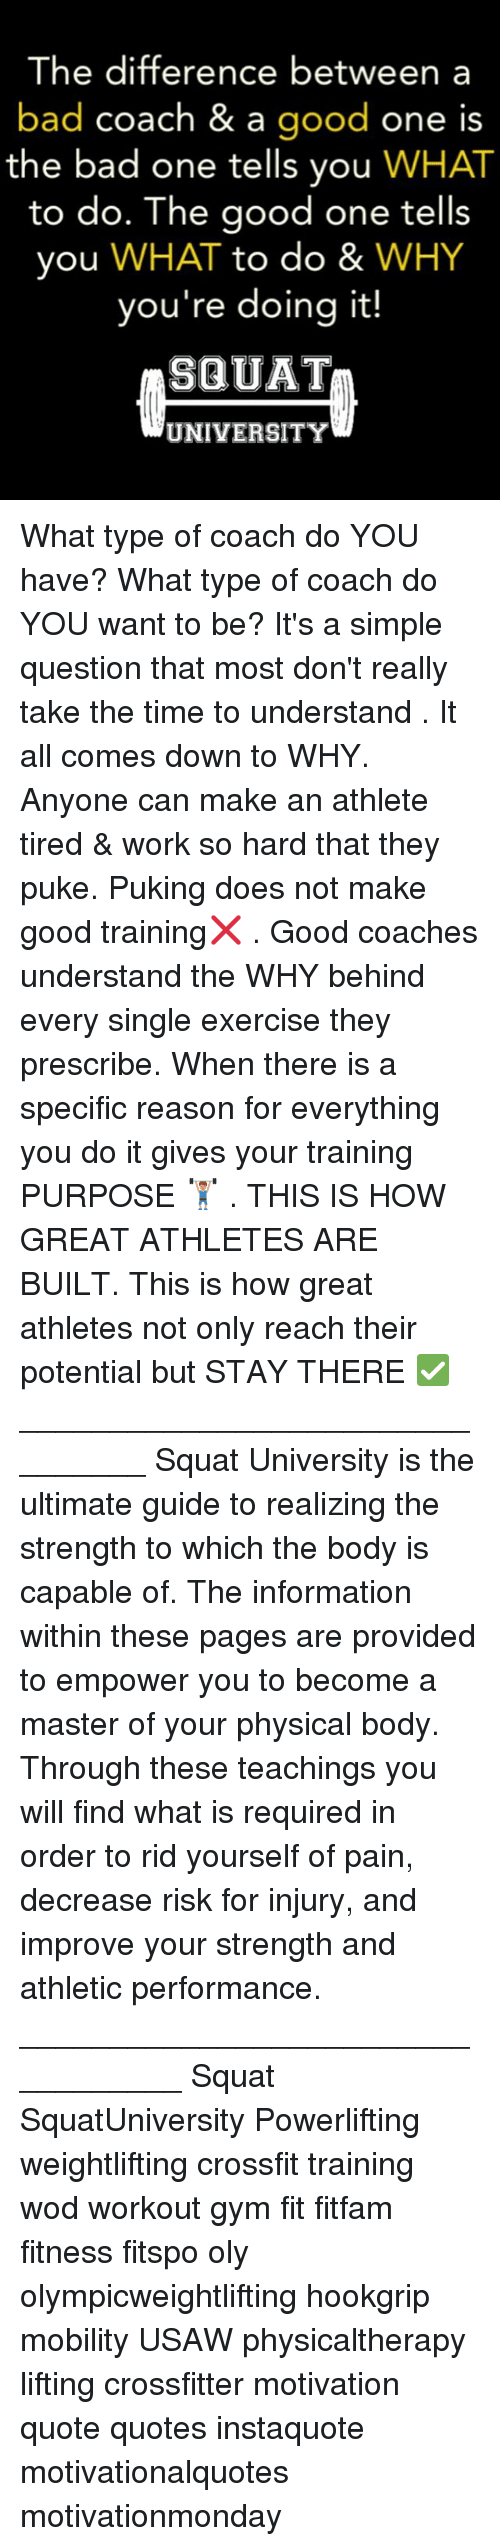 Bad, Gym, and Memes: The difference between a  bad coach & a  good  one is  the bad one tells you  WHAT  to do. The good one tells  you  WHAT to do &  WHY  you're doing it!  SQUAT  UNIVERSITY What type of coach do YOU have? What type of coach do YOU want to be? It's a simple question that most don't really take the time to understand . It all comes down to WHY. Anyone can make an athlete tired & work so hard that they puke. Puking does not make good training❌ . Good coaches understand the WHY behind every single exercise they prescribe. When there is a specific reason for everything you do it gives your training PURPOSE 🏋🏽 . THIS IS HOW GREAT ATHLETES ARE BUILT. This is how great athletes not only reach their potential but STAY THERE ✅ ________________________________ Squat University is the ultimate guide to realizing the strength to which the body is capable of. The information within these pages are provided to empower you to become a master of your physical body. Through these teachings you will find what is required in order to rid yourself of pain, decrease risk for injury, and improve your strength and athletic performance. __________________________________ Squat SquatUniversity Powerlifting weightlifting crossfit training wod workout gym fit fitfam fitness fitspo oly olympicweightlifting hookgrip mobility USAW physicaltherapy lifting crossfitter motivation quote quotes instaquote motivationalquotes motivationmonday